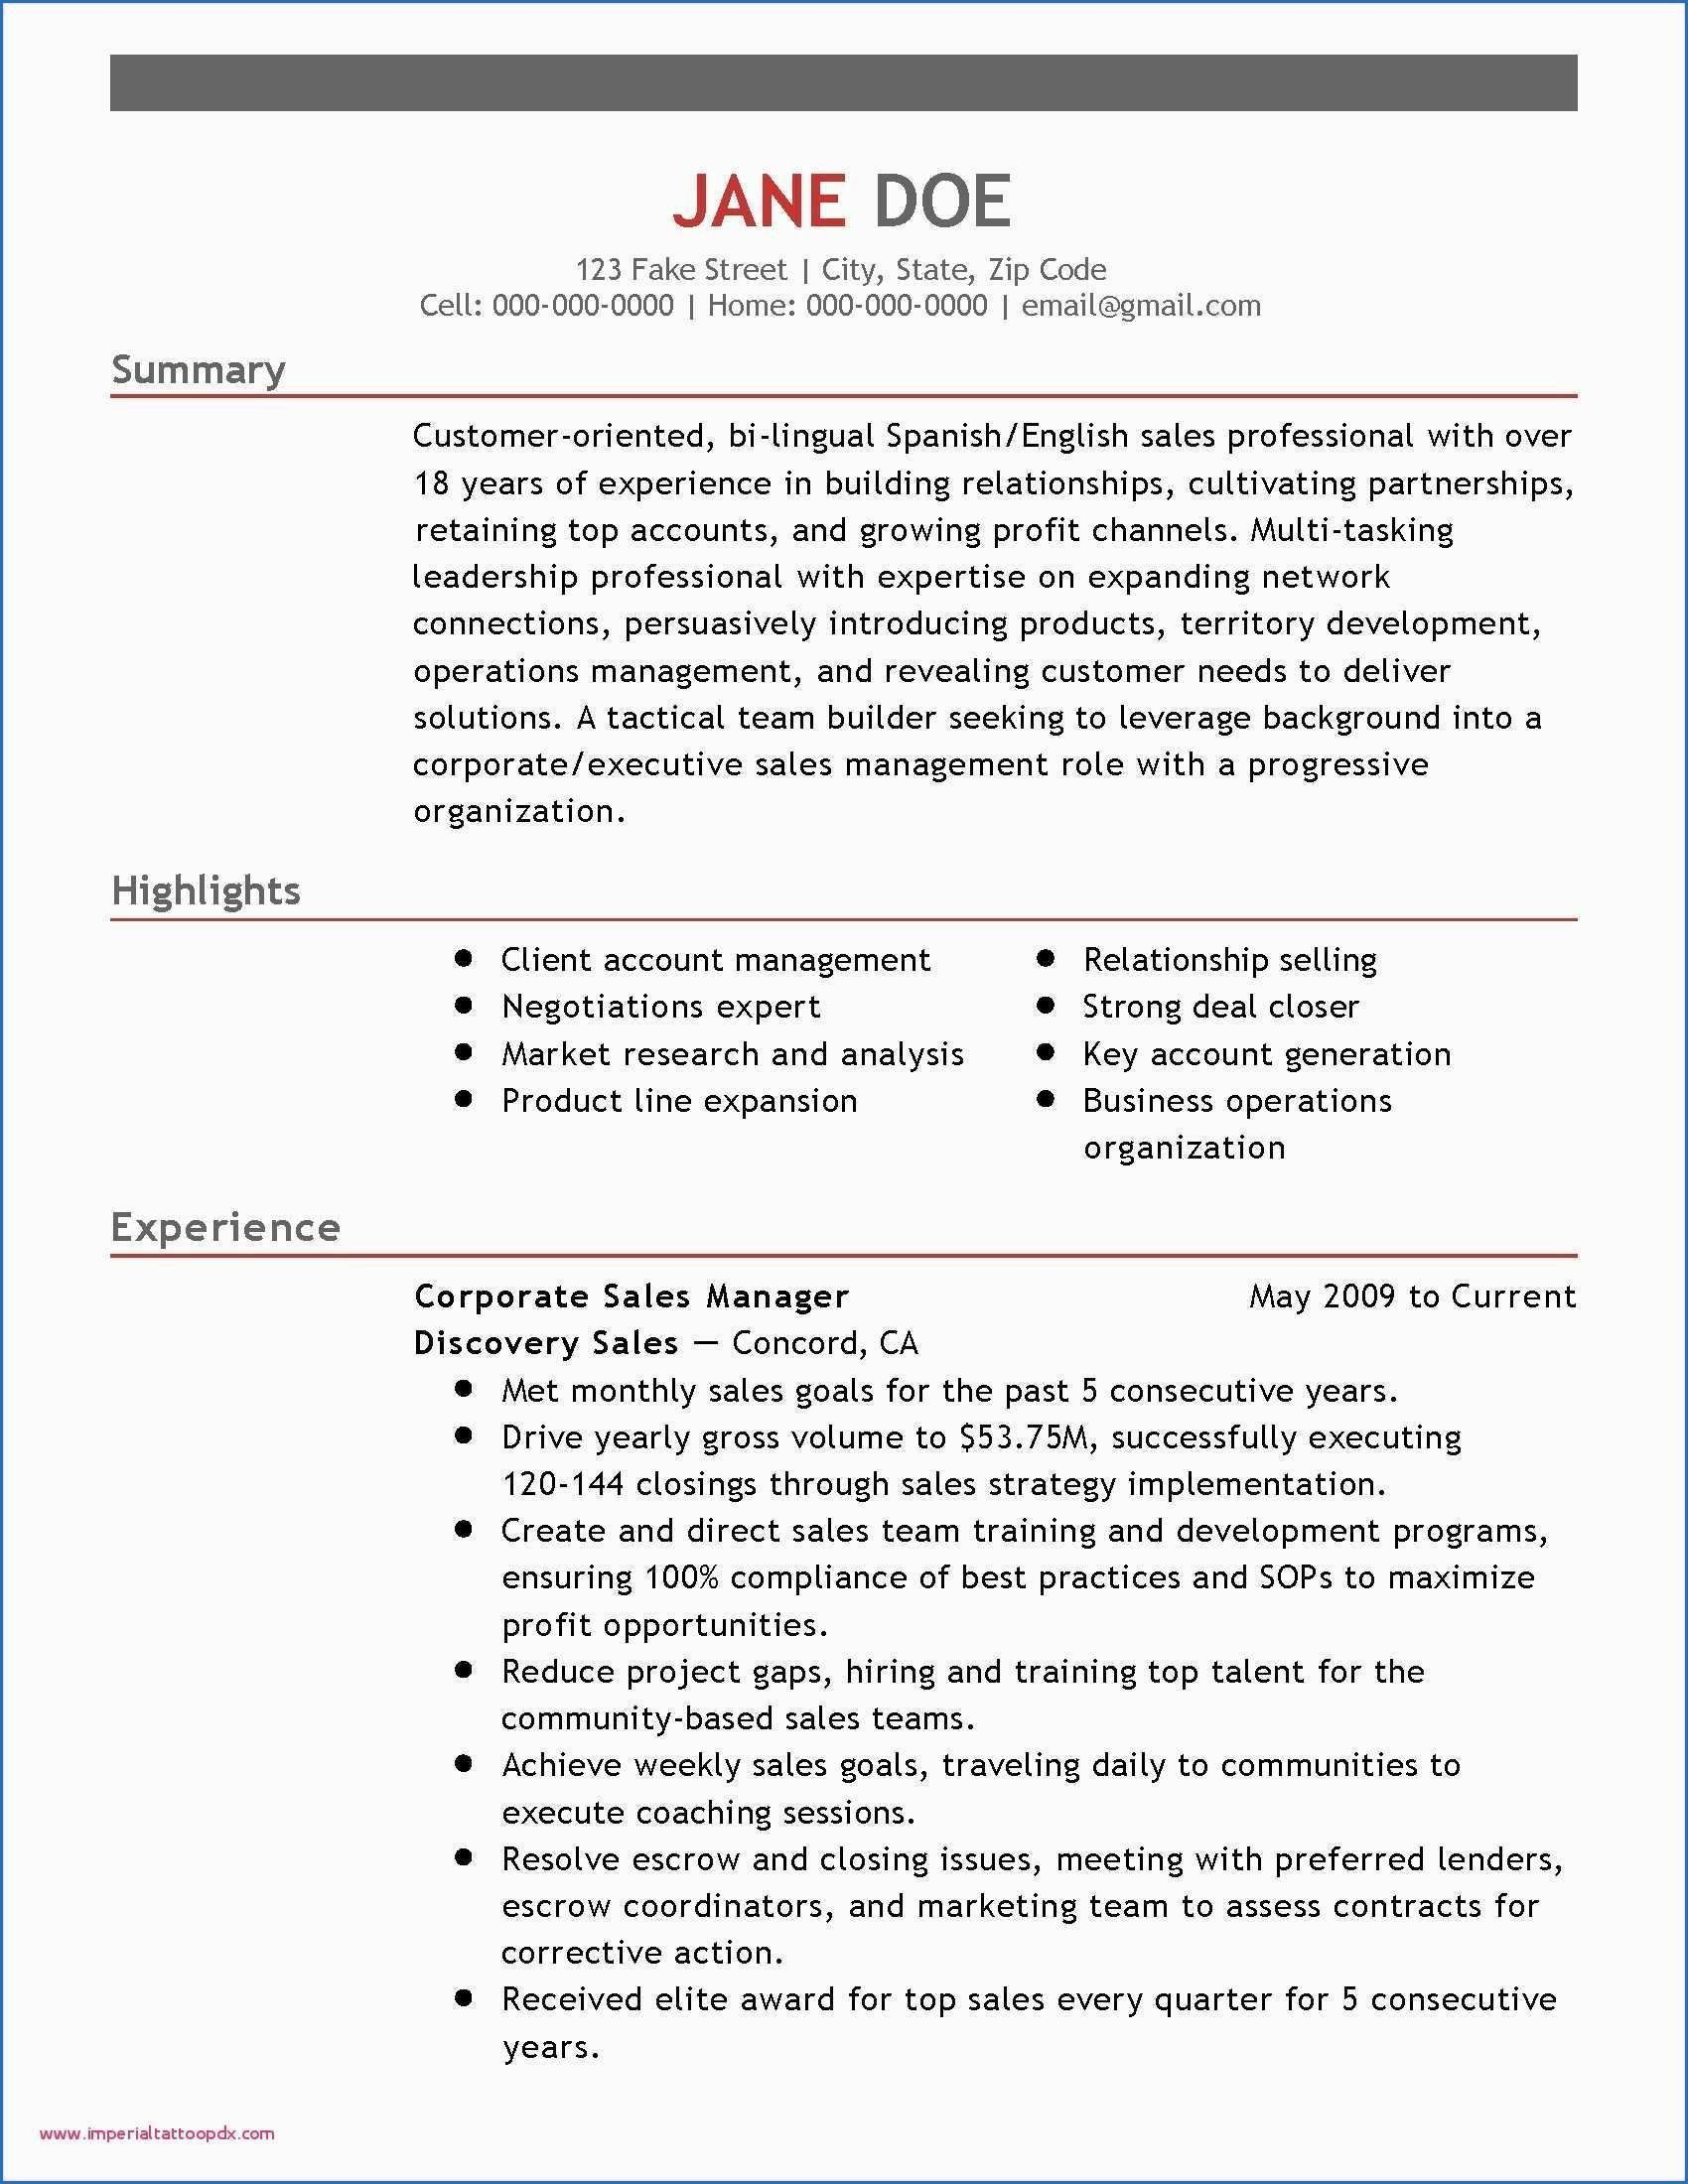 Nova Hunting The Elements Worksheet 15 Sample Resume